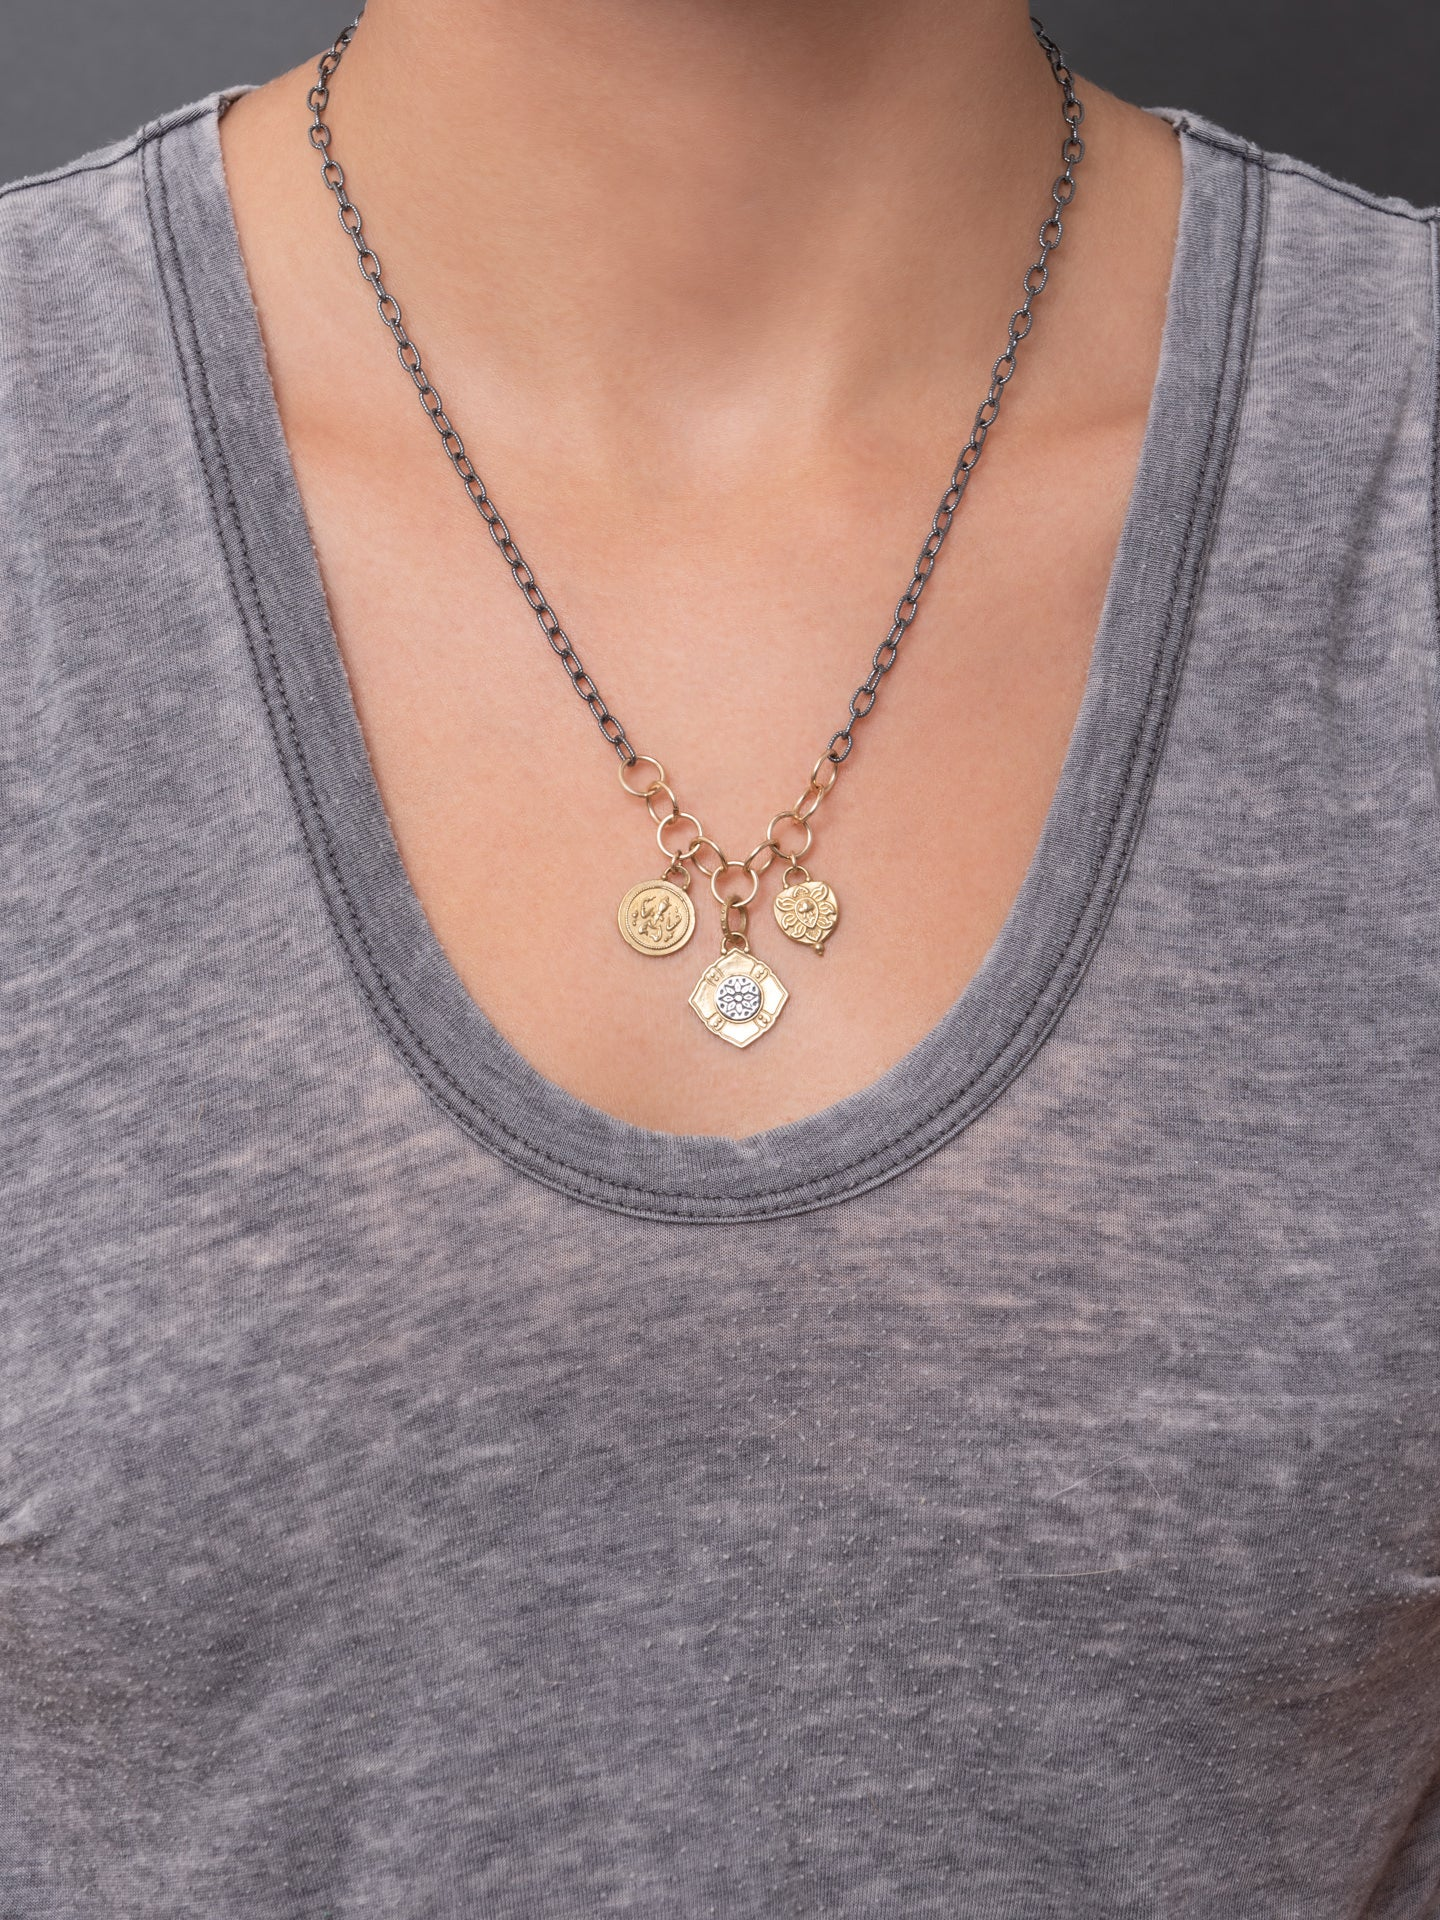 "Akasha Necklace - Meta ""cultivate kindness"""